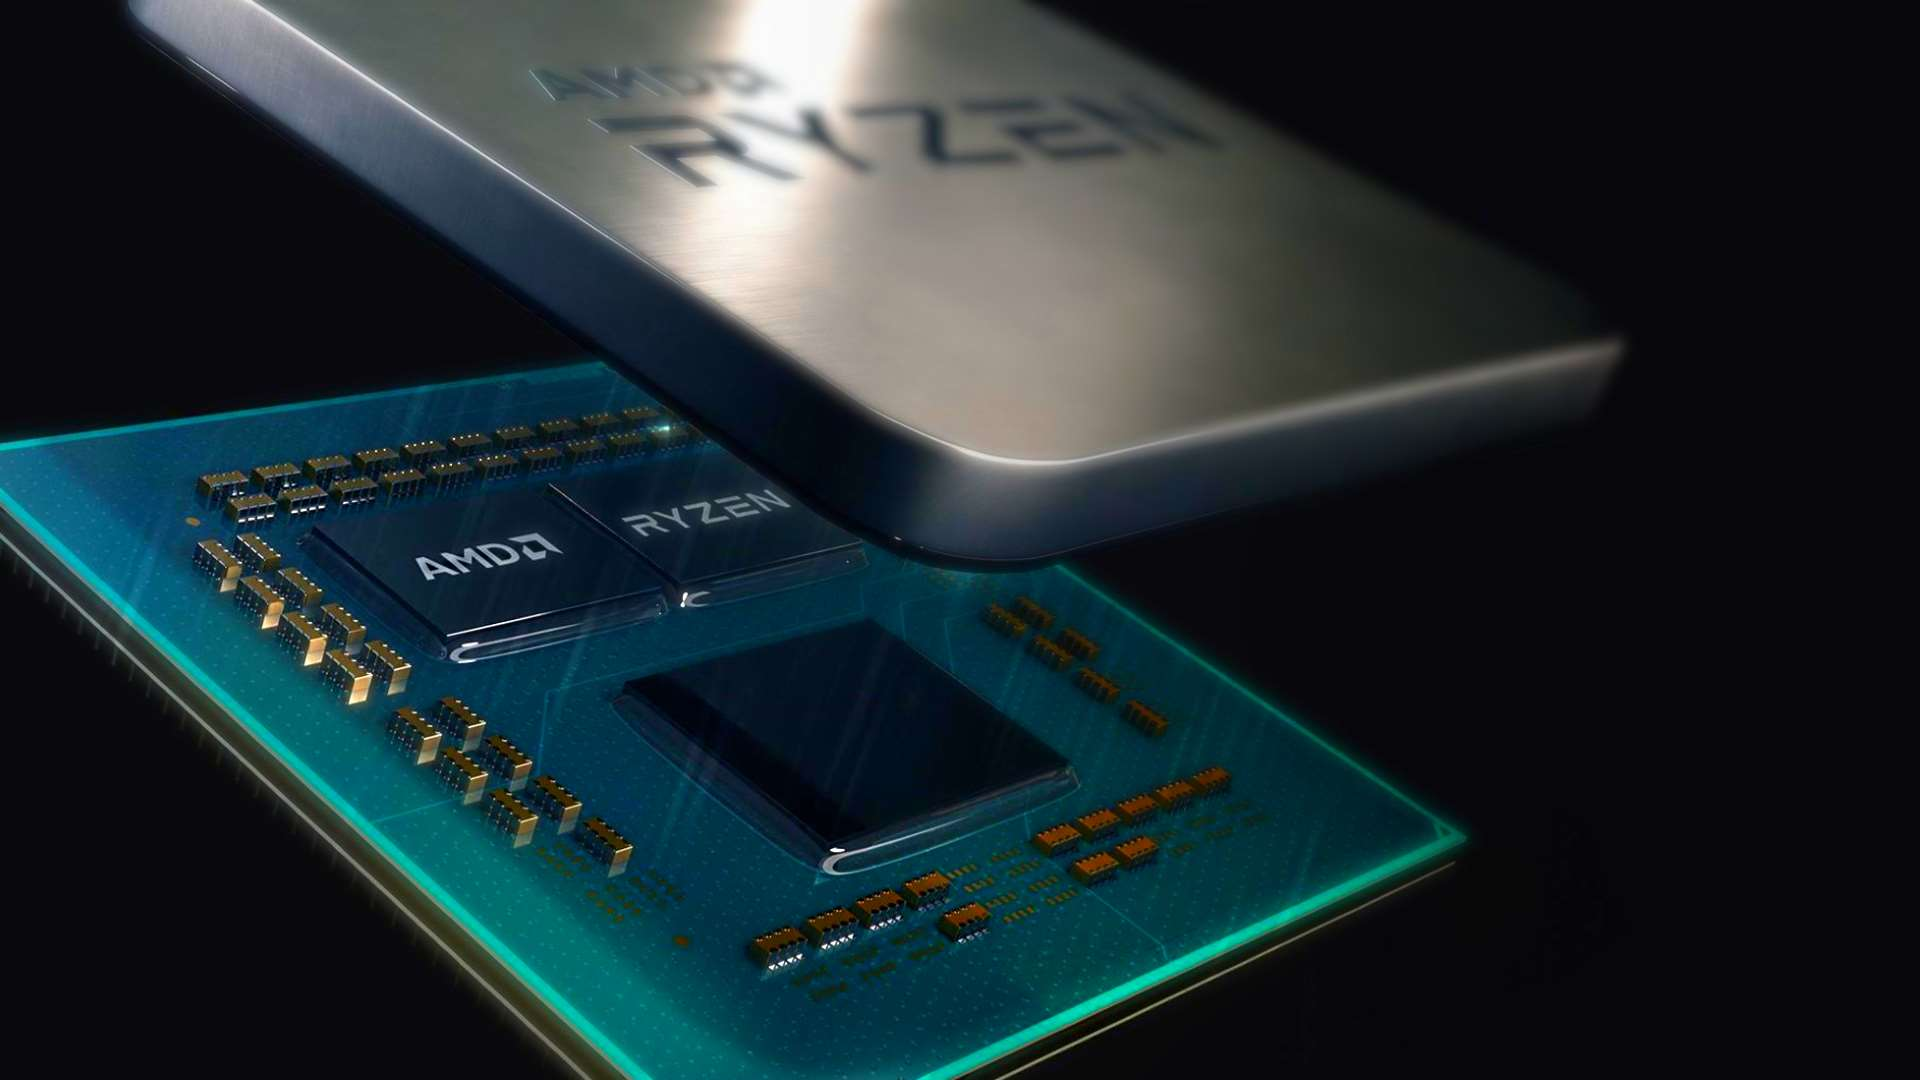 AMD Ryzen 5 3600 looks to beat the Intel Core i9-9900K in Geekbench